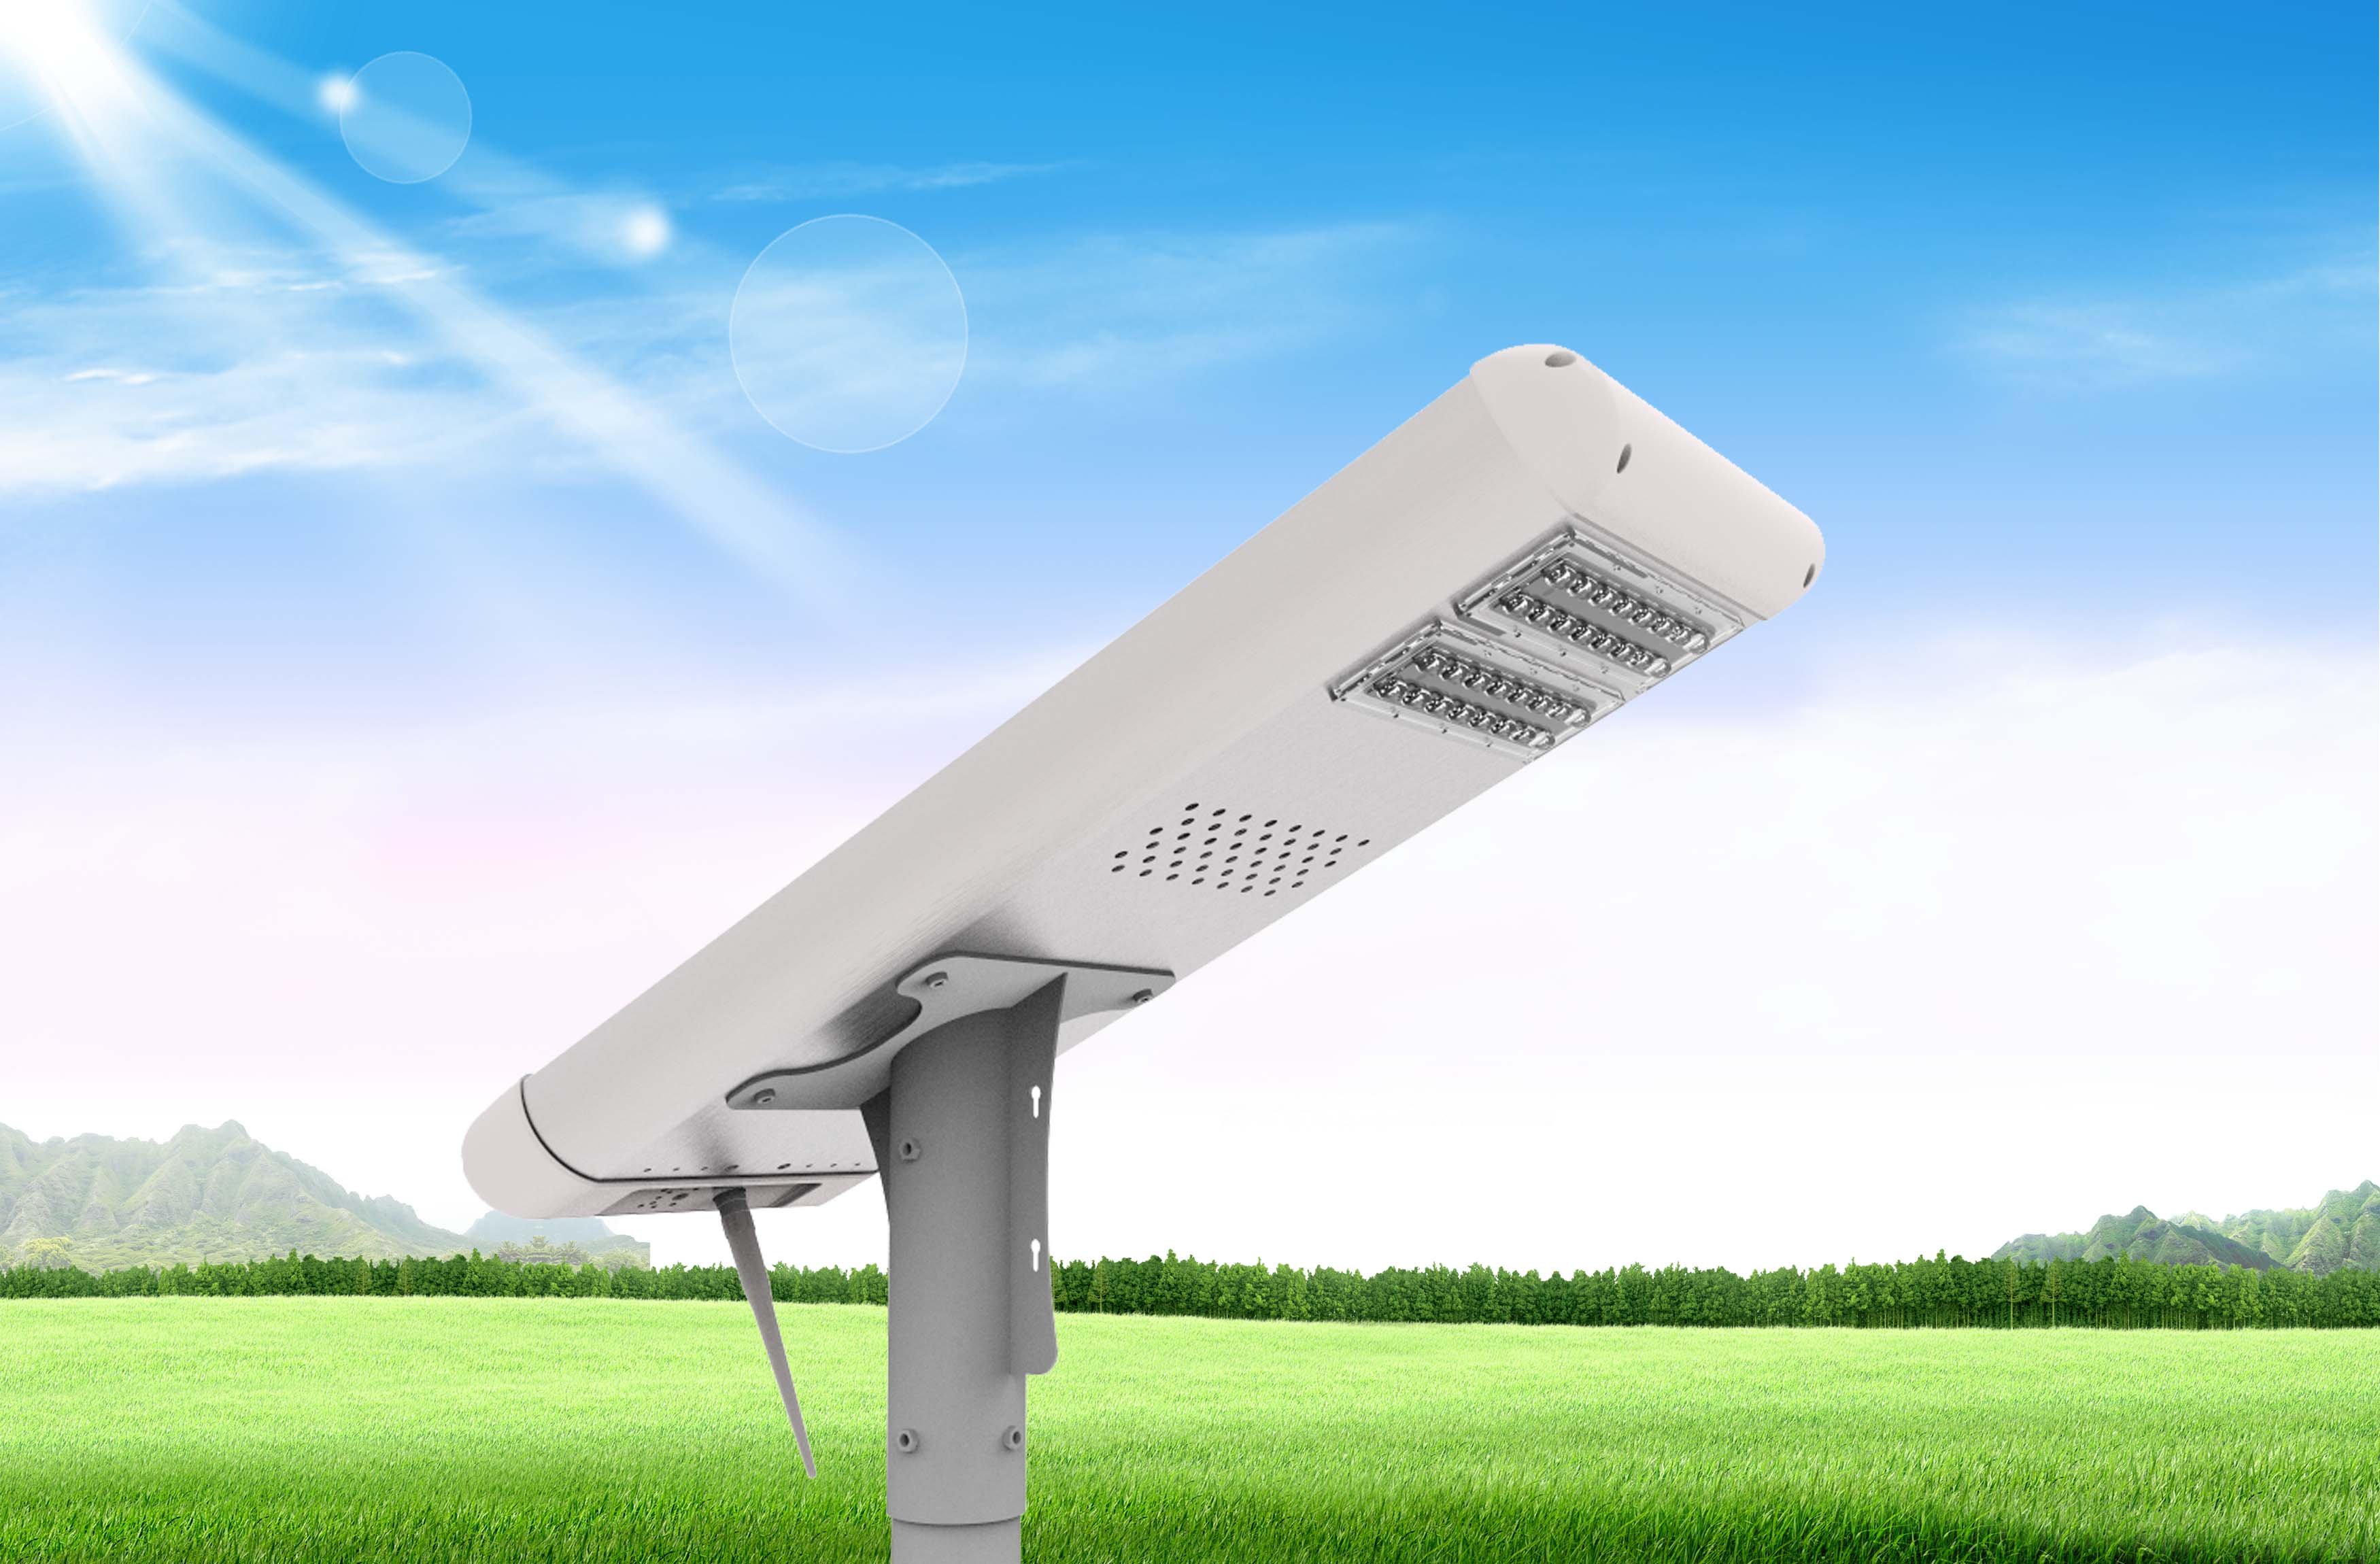 Hybrid LED Street Lighting ( Solar Powered ) with Li Fe PO4 batttery 26650